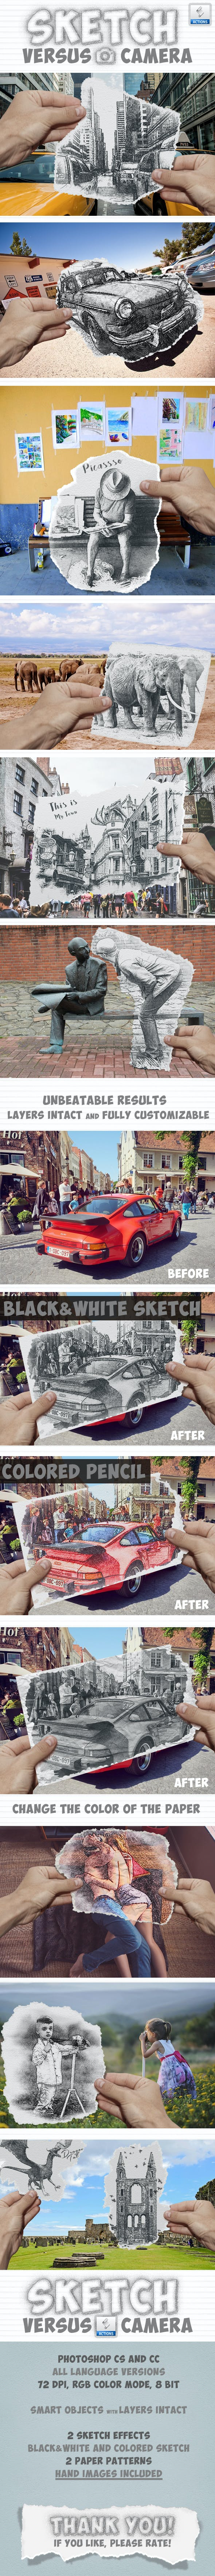 Pencil sketch vs camera photo effect photoshop action photo effects actions